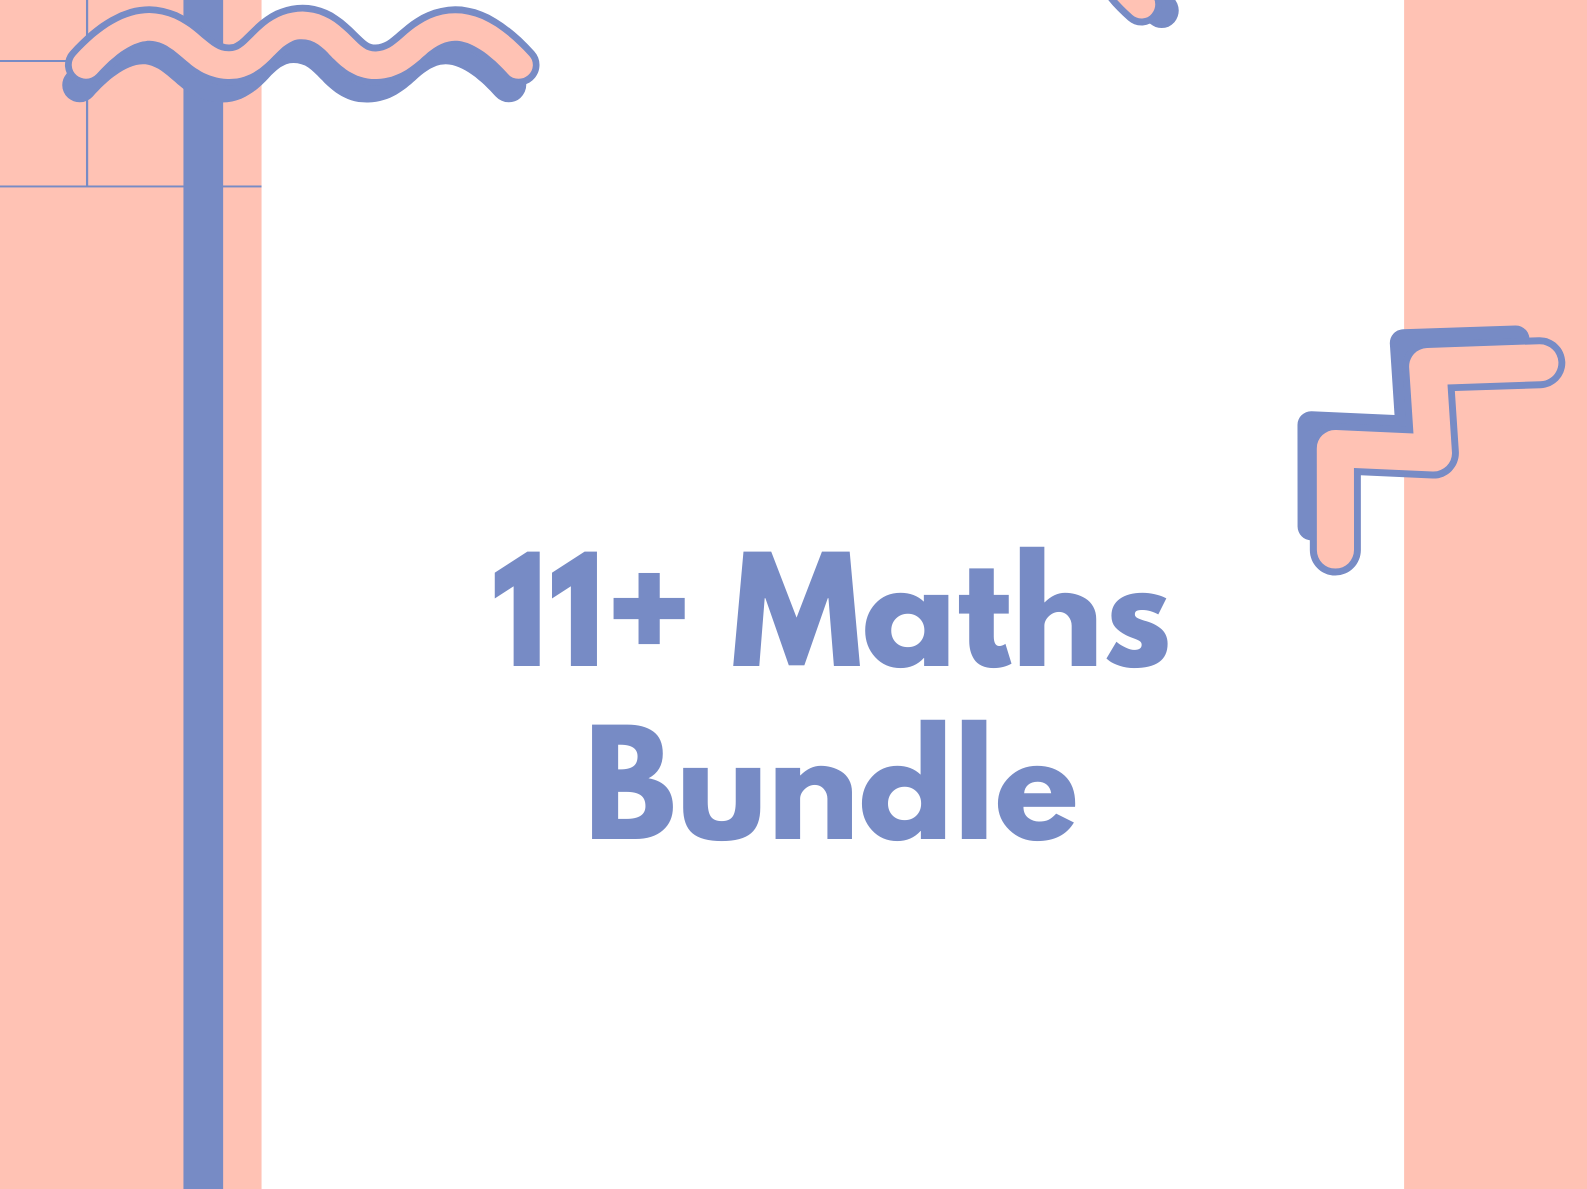 11+ Maths Bundle